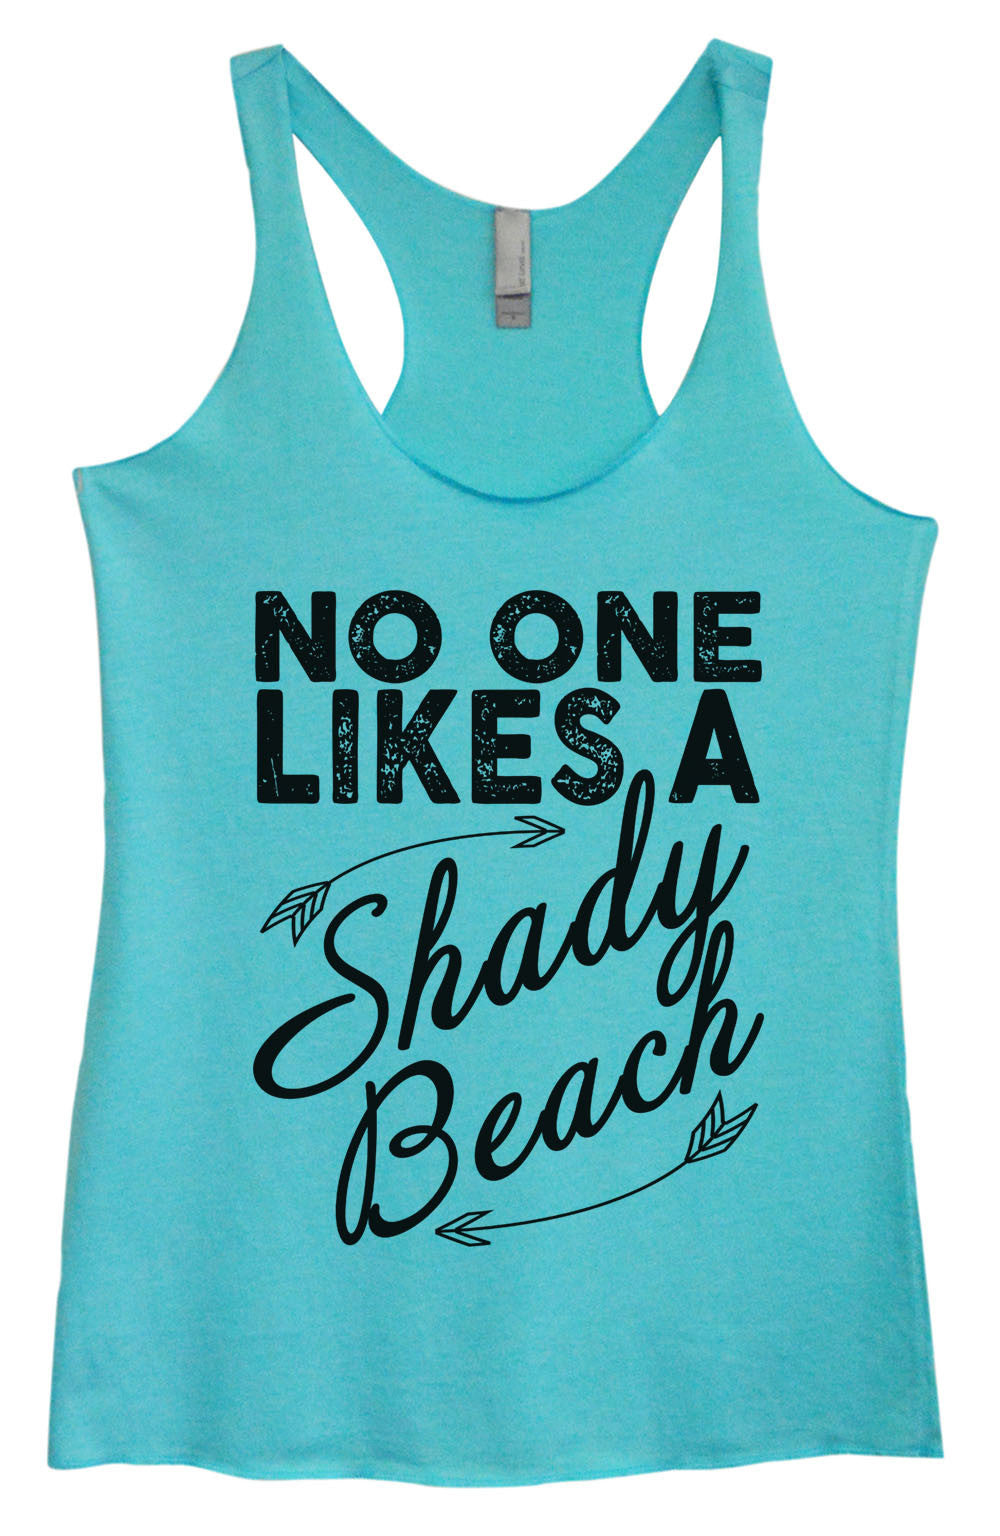 Womens Fashion Triblend Tank Top - No One Likes A Shady Beach - Tri-964 - Funny Shirts Tank Tops Burnouts and Triblends  - 3